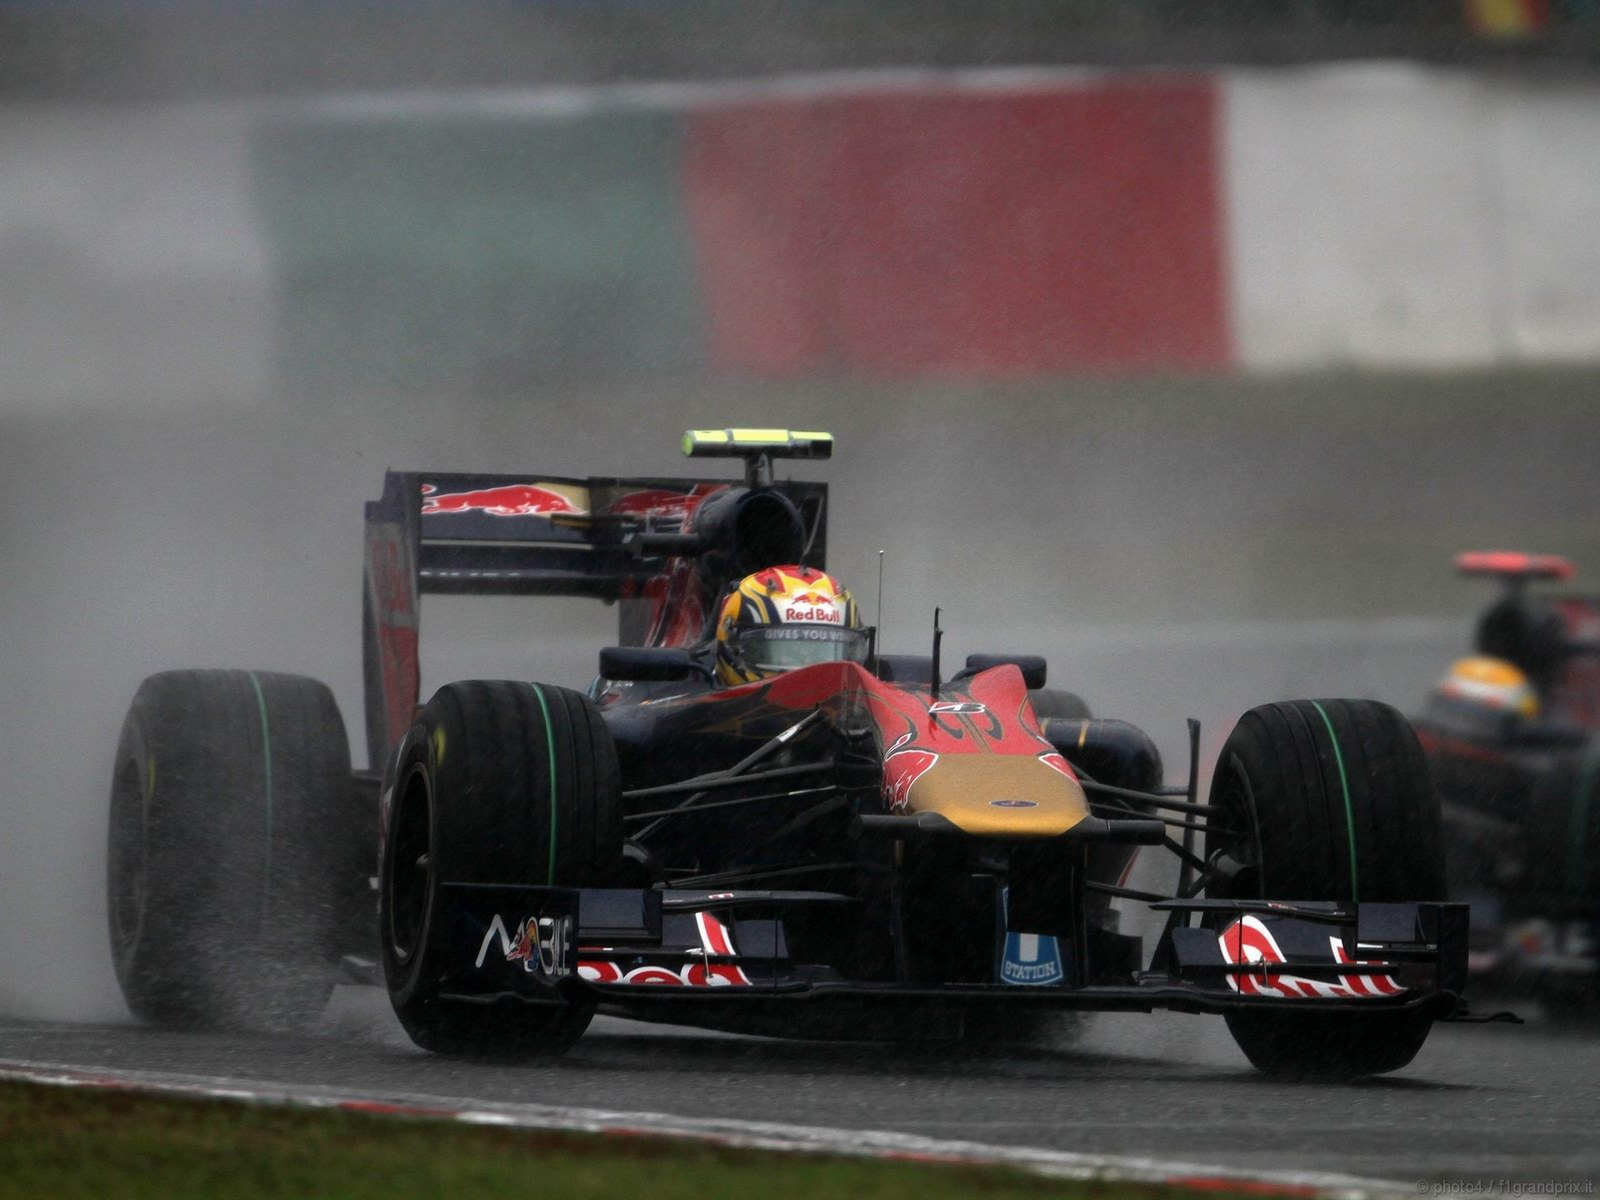 pojazdy - formula1 - gp_giappone_wallpapers_000100